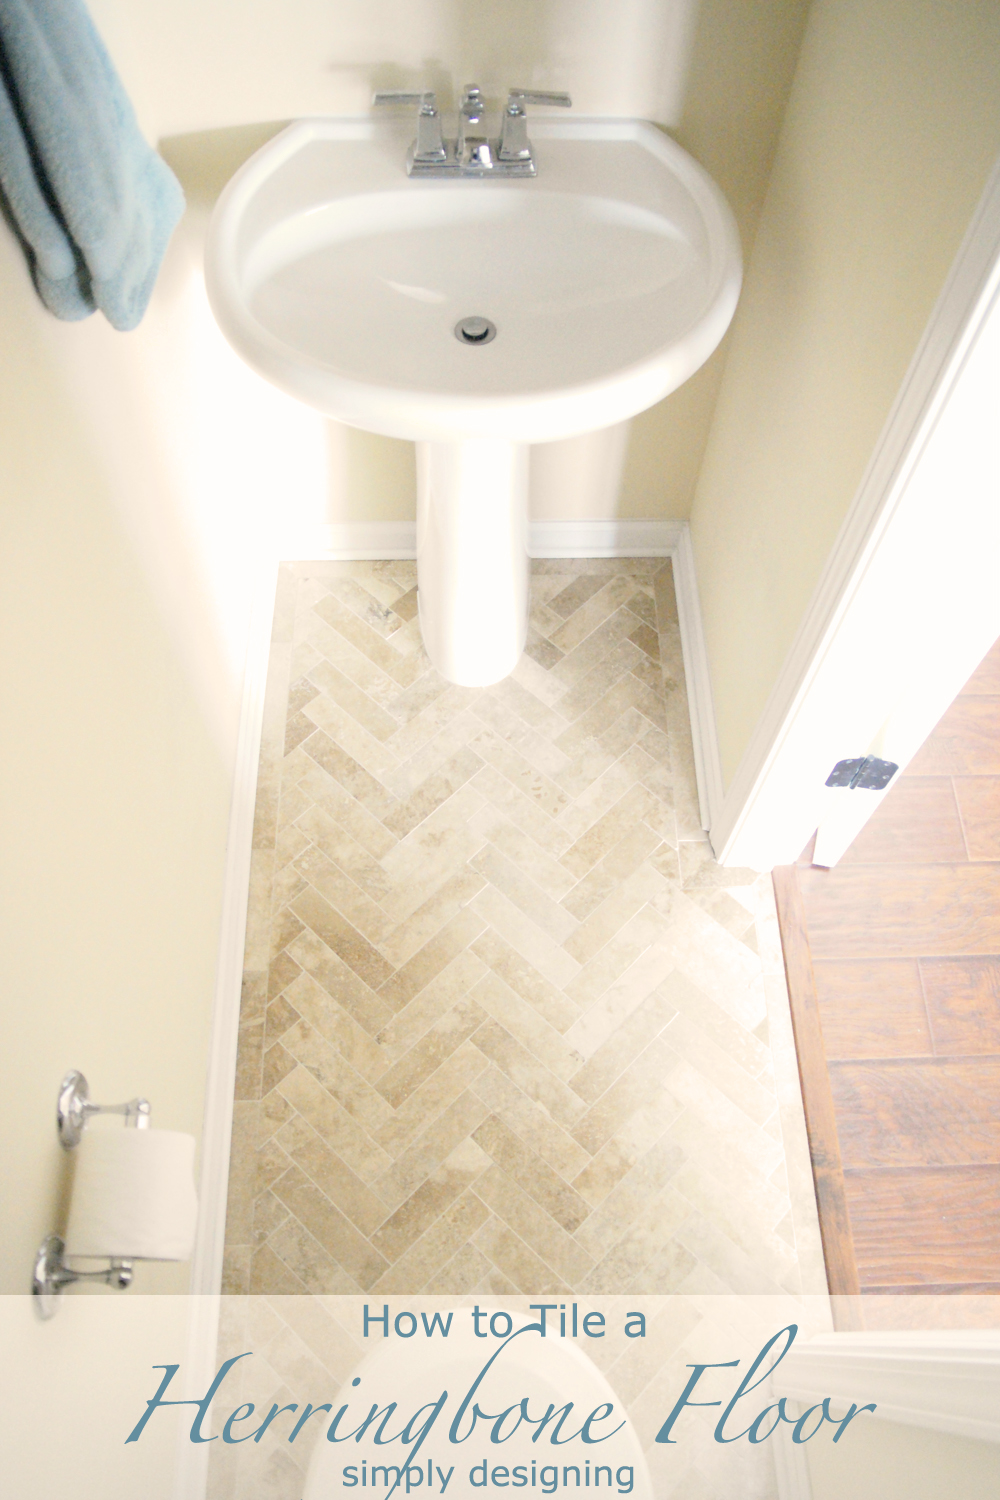 Herringbone tile floor how to prep lay and install always wanted a herringbone tile floor but thought it might be too difficult to do yourself dailygadgetfo Gallery